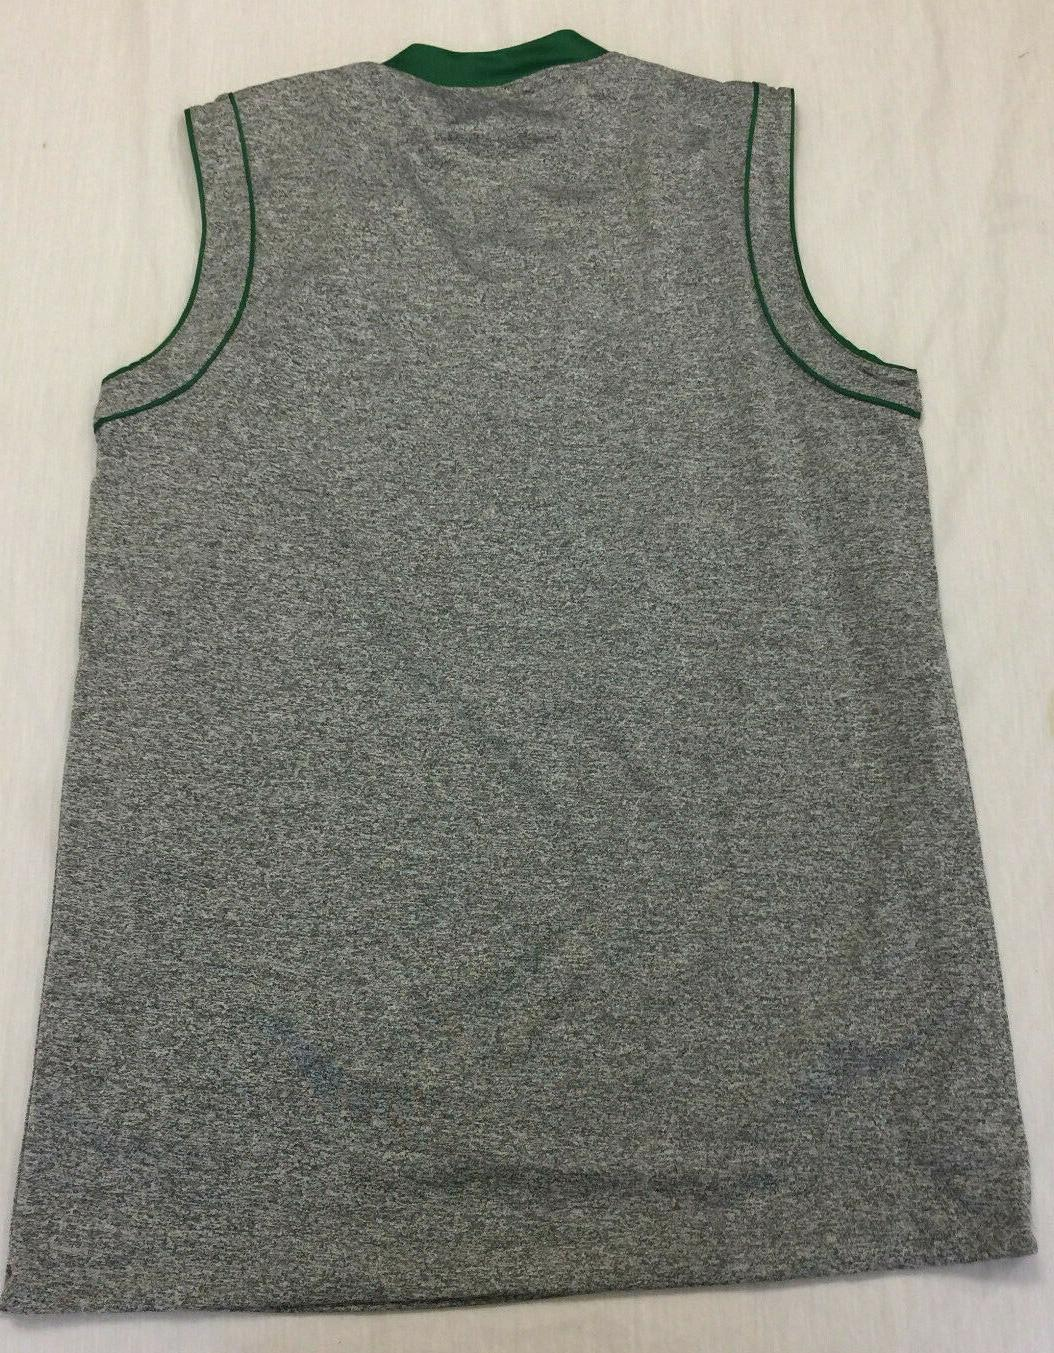 NWOT A4 MENS ATHLETIC SLEEVELESS REVERSIBLE SHIRT SIZE S